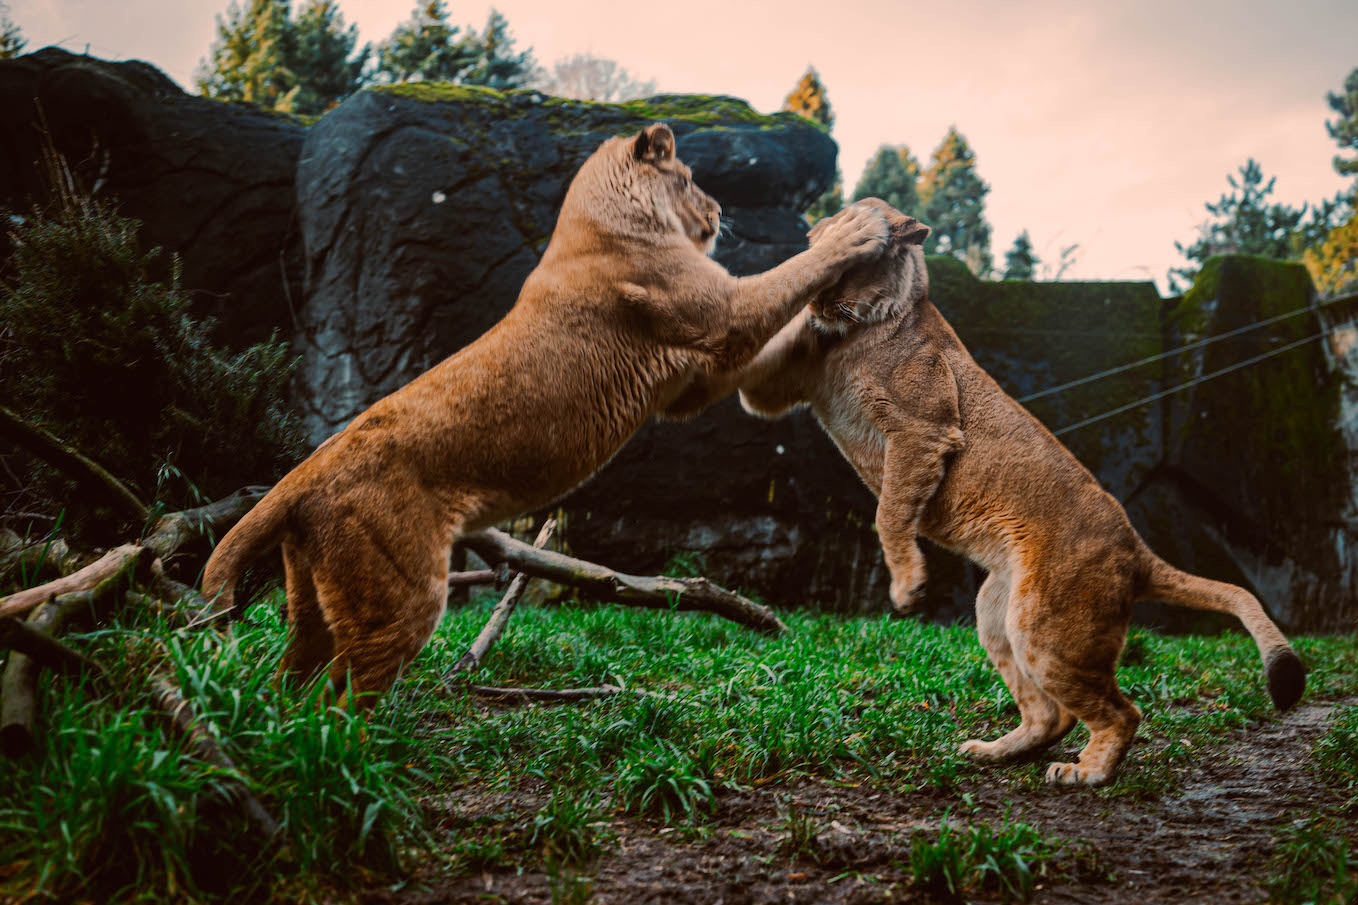 Lions playing together, by Gibran Hamdan Seattle photographer